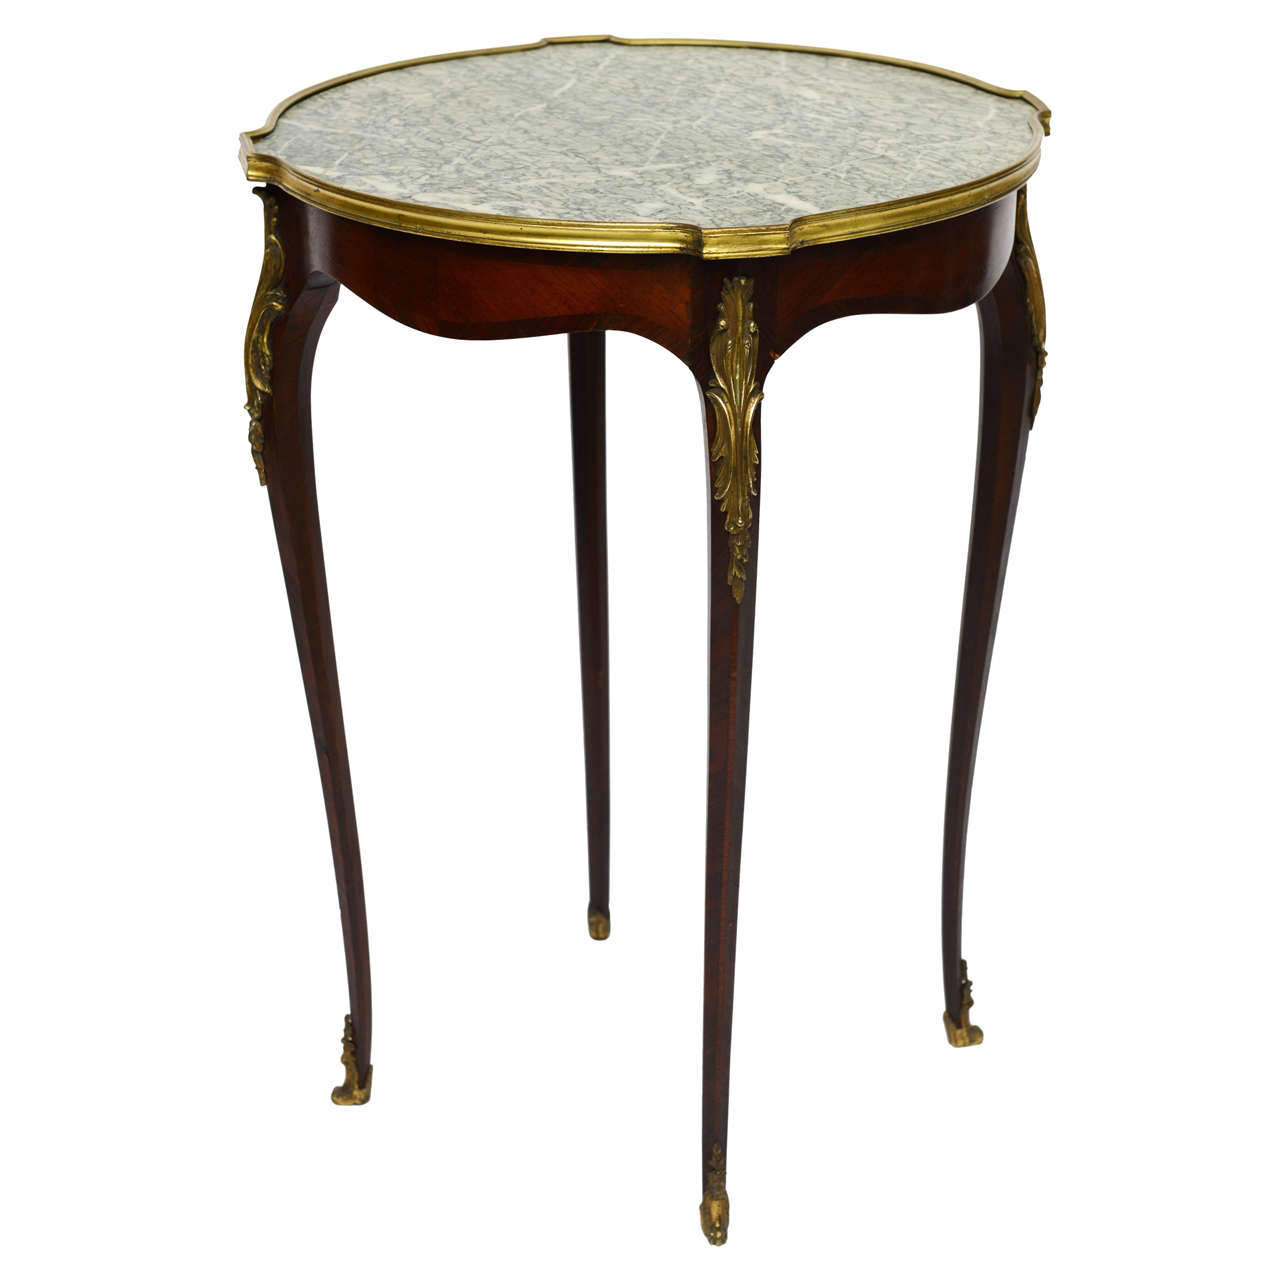 Fine Louis XV Style Side Marble Top Bouillotte Table with Provenance